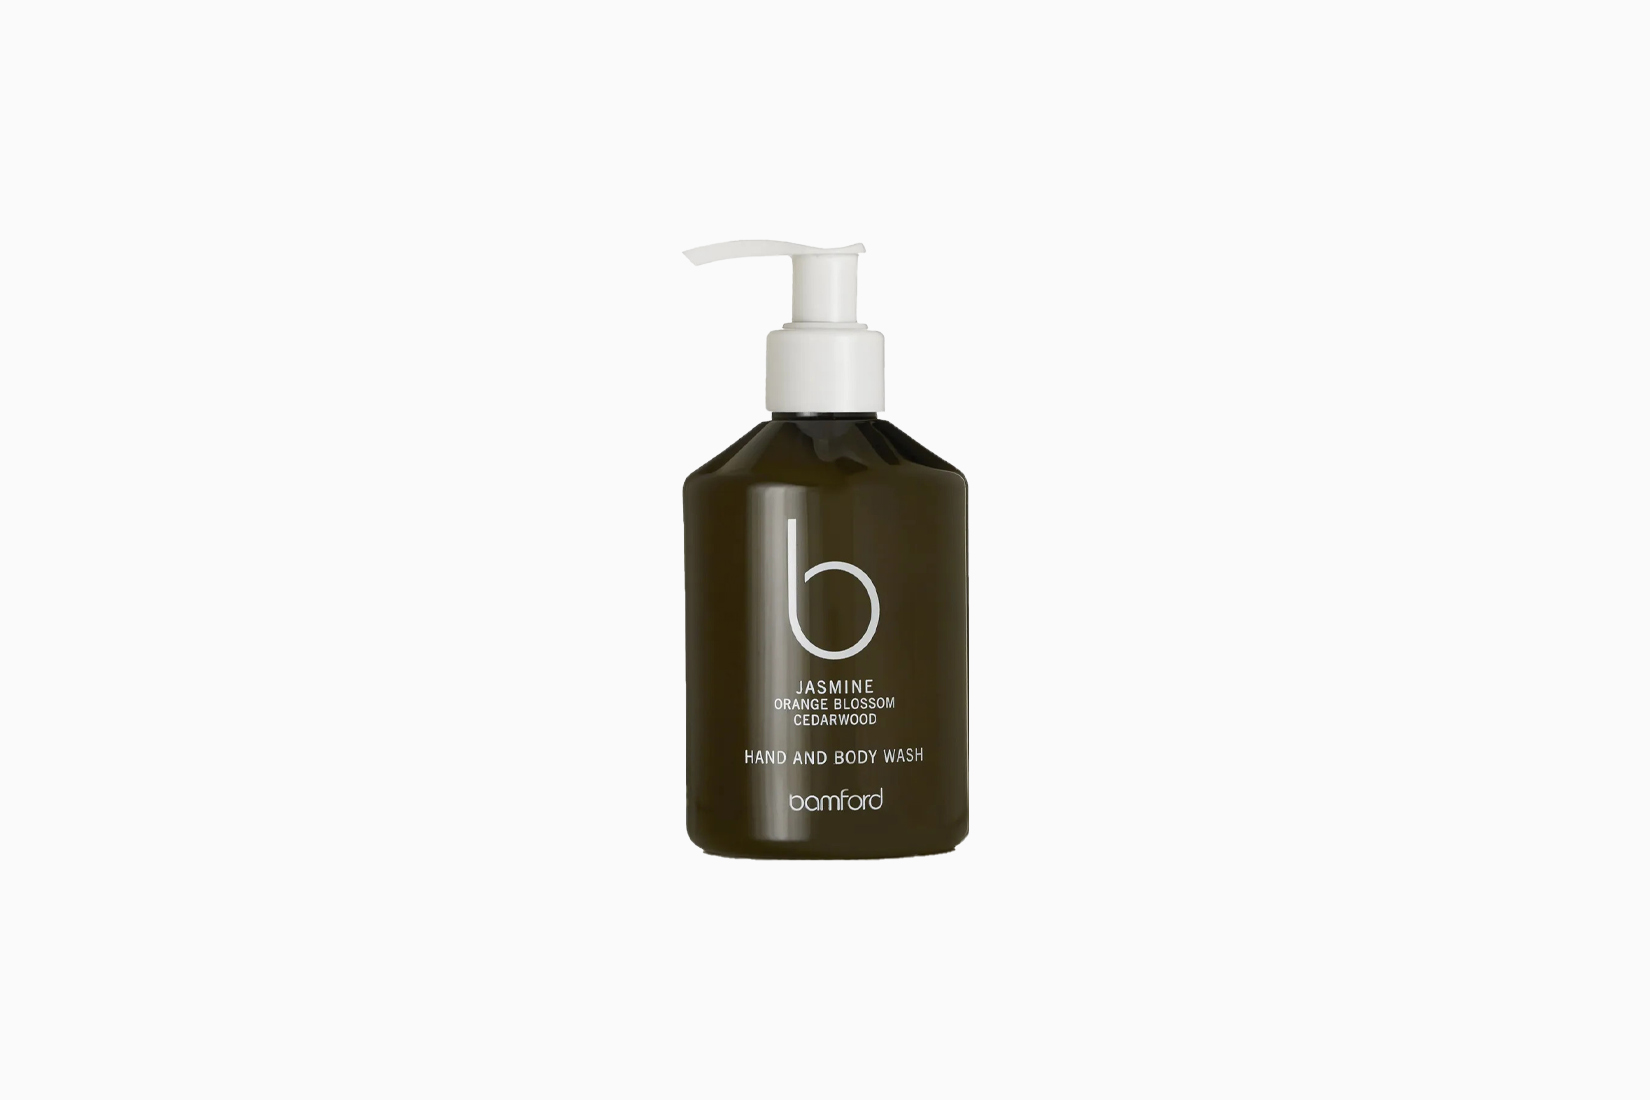 best hand soap bamford review - Luxe Digital